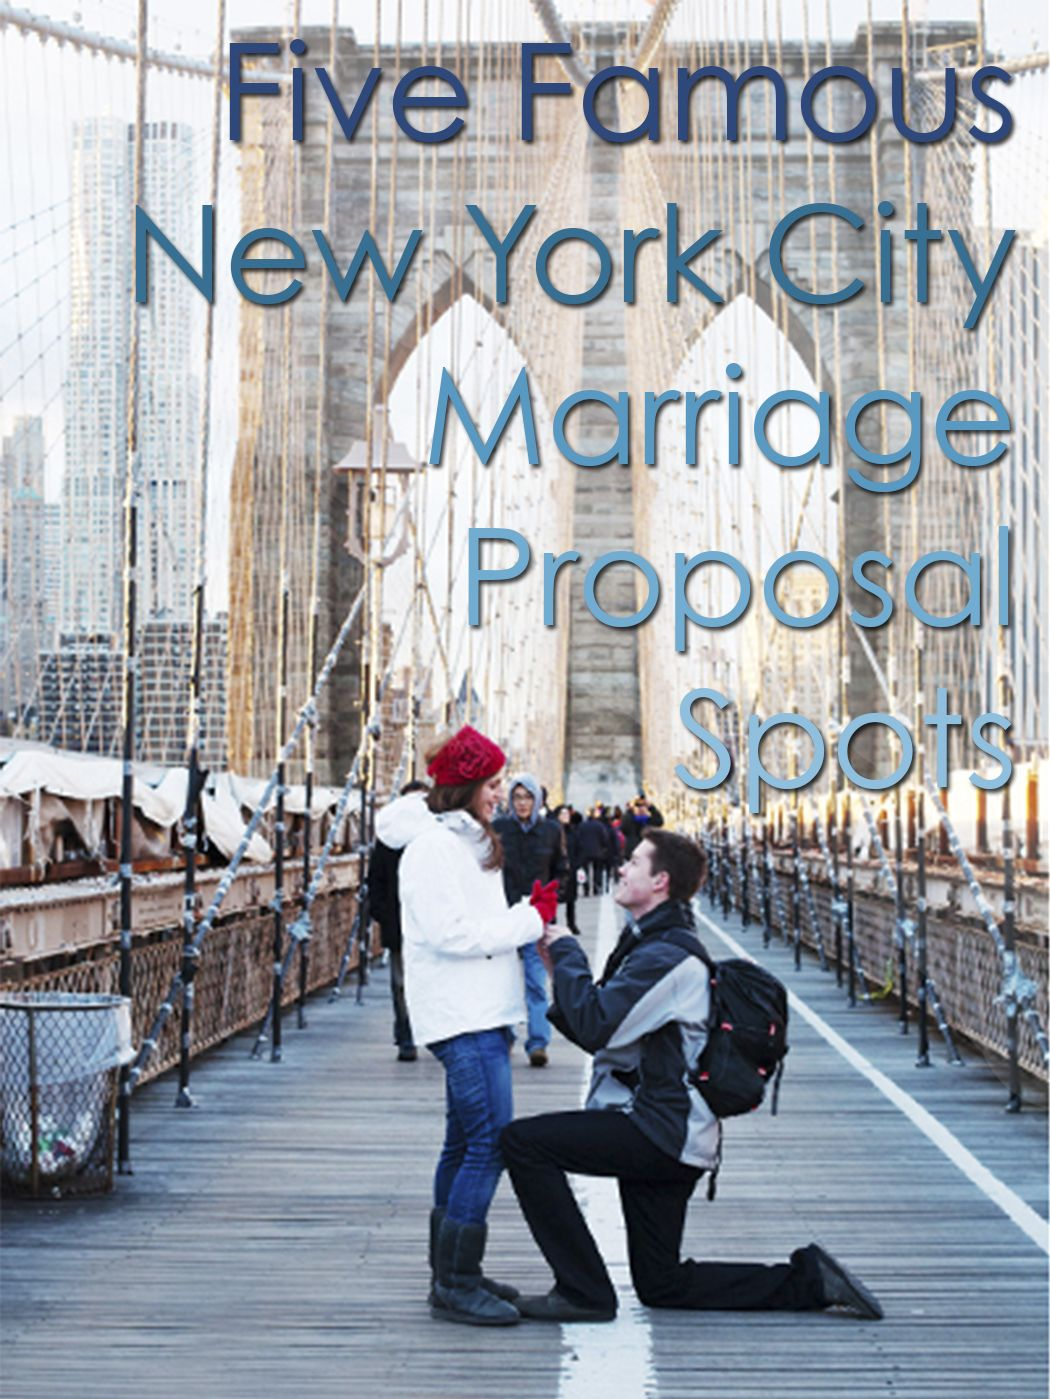 Five Famous Nyc Marriage Proposal Spots Proposal Ideas Blog New York City Christmas Proposal Spots Best Places To Propose